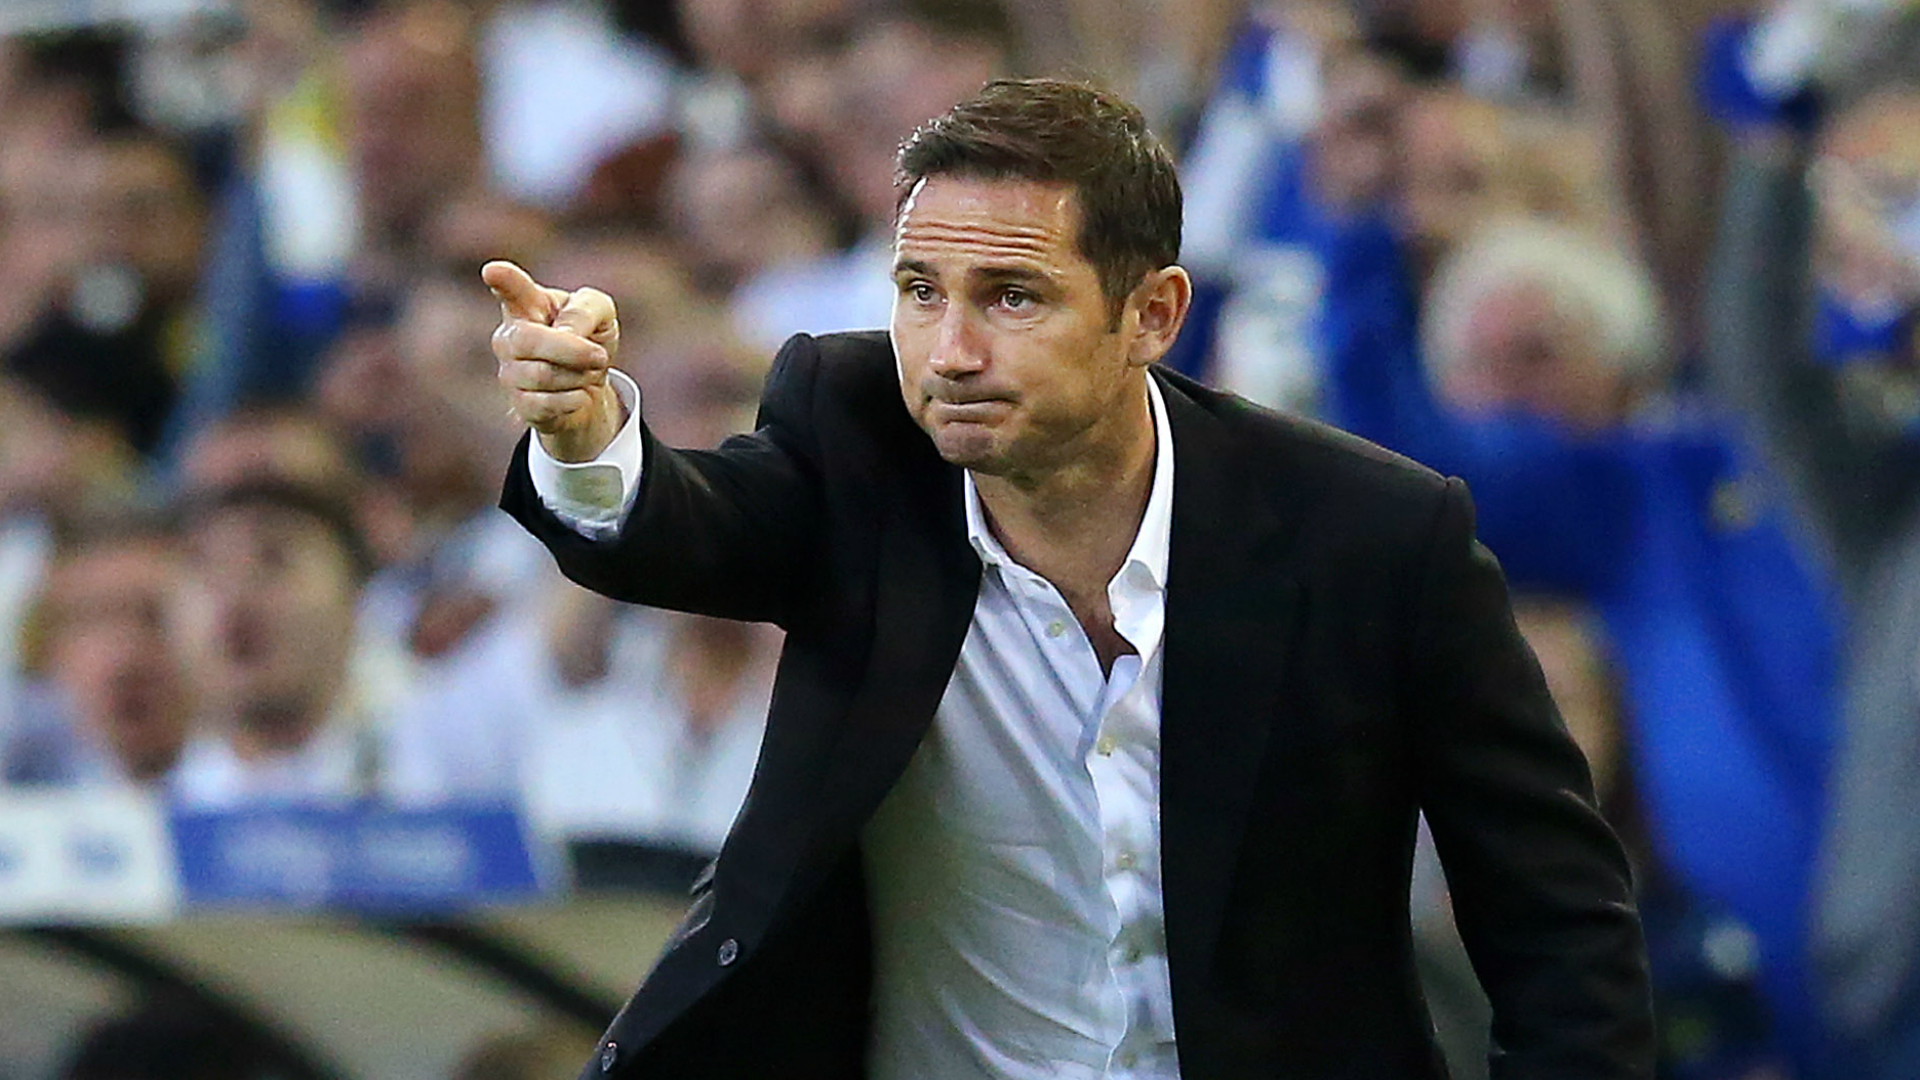 Chelsea Manager, Frank Lampard, believes his side are a long way short of the levels of Premier League Champions Liverpool and Manchester City, who have set the benchmark in terms of consistency. Lampard's Chelsea, currently third in the league, visit title winners Liverpool on Wednesday, chasing the three points they need to secure Champions League […]